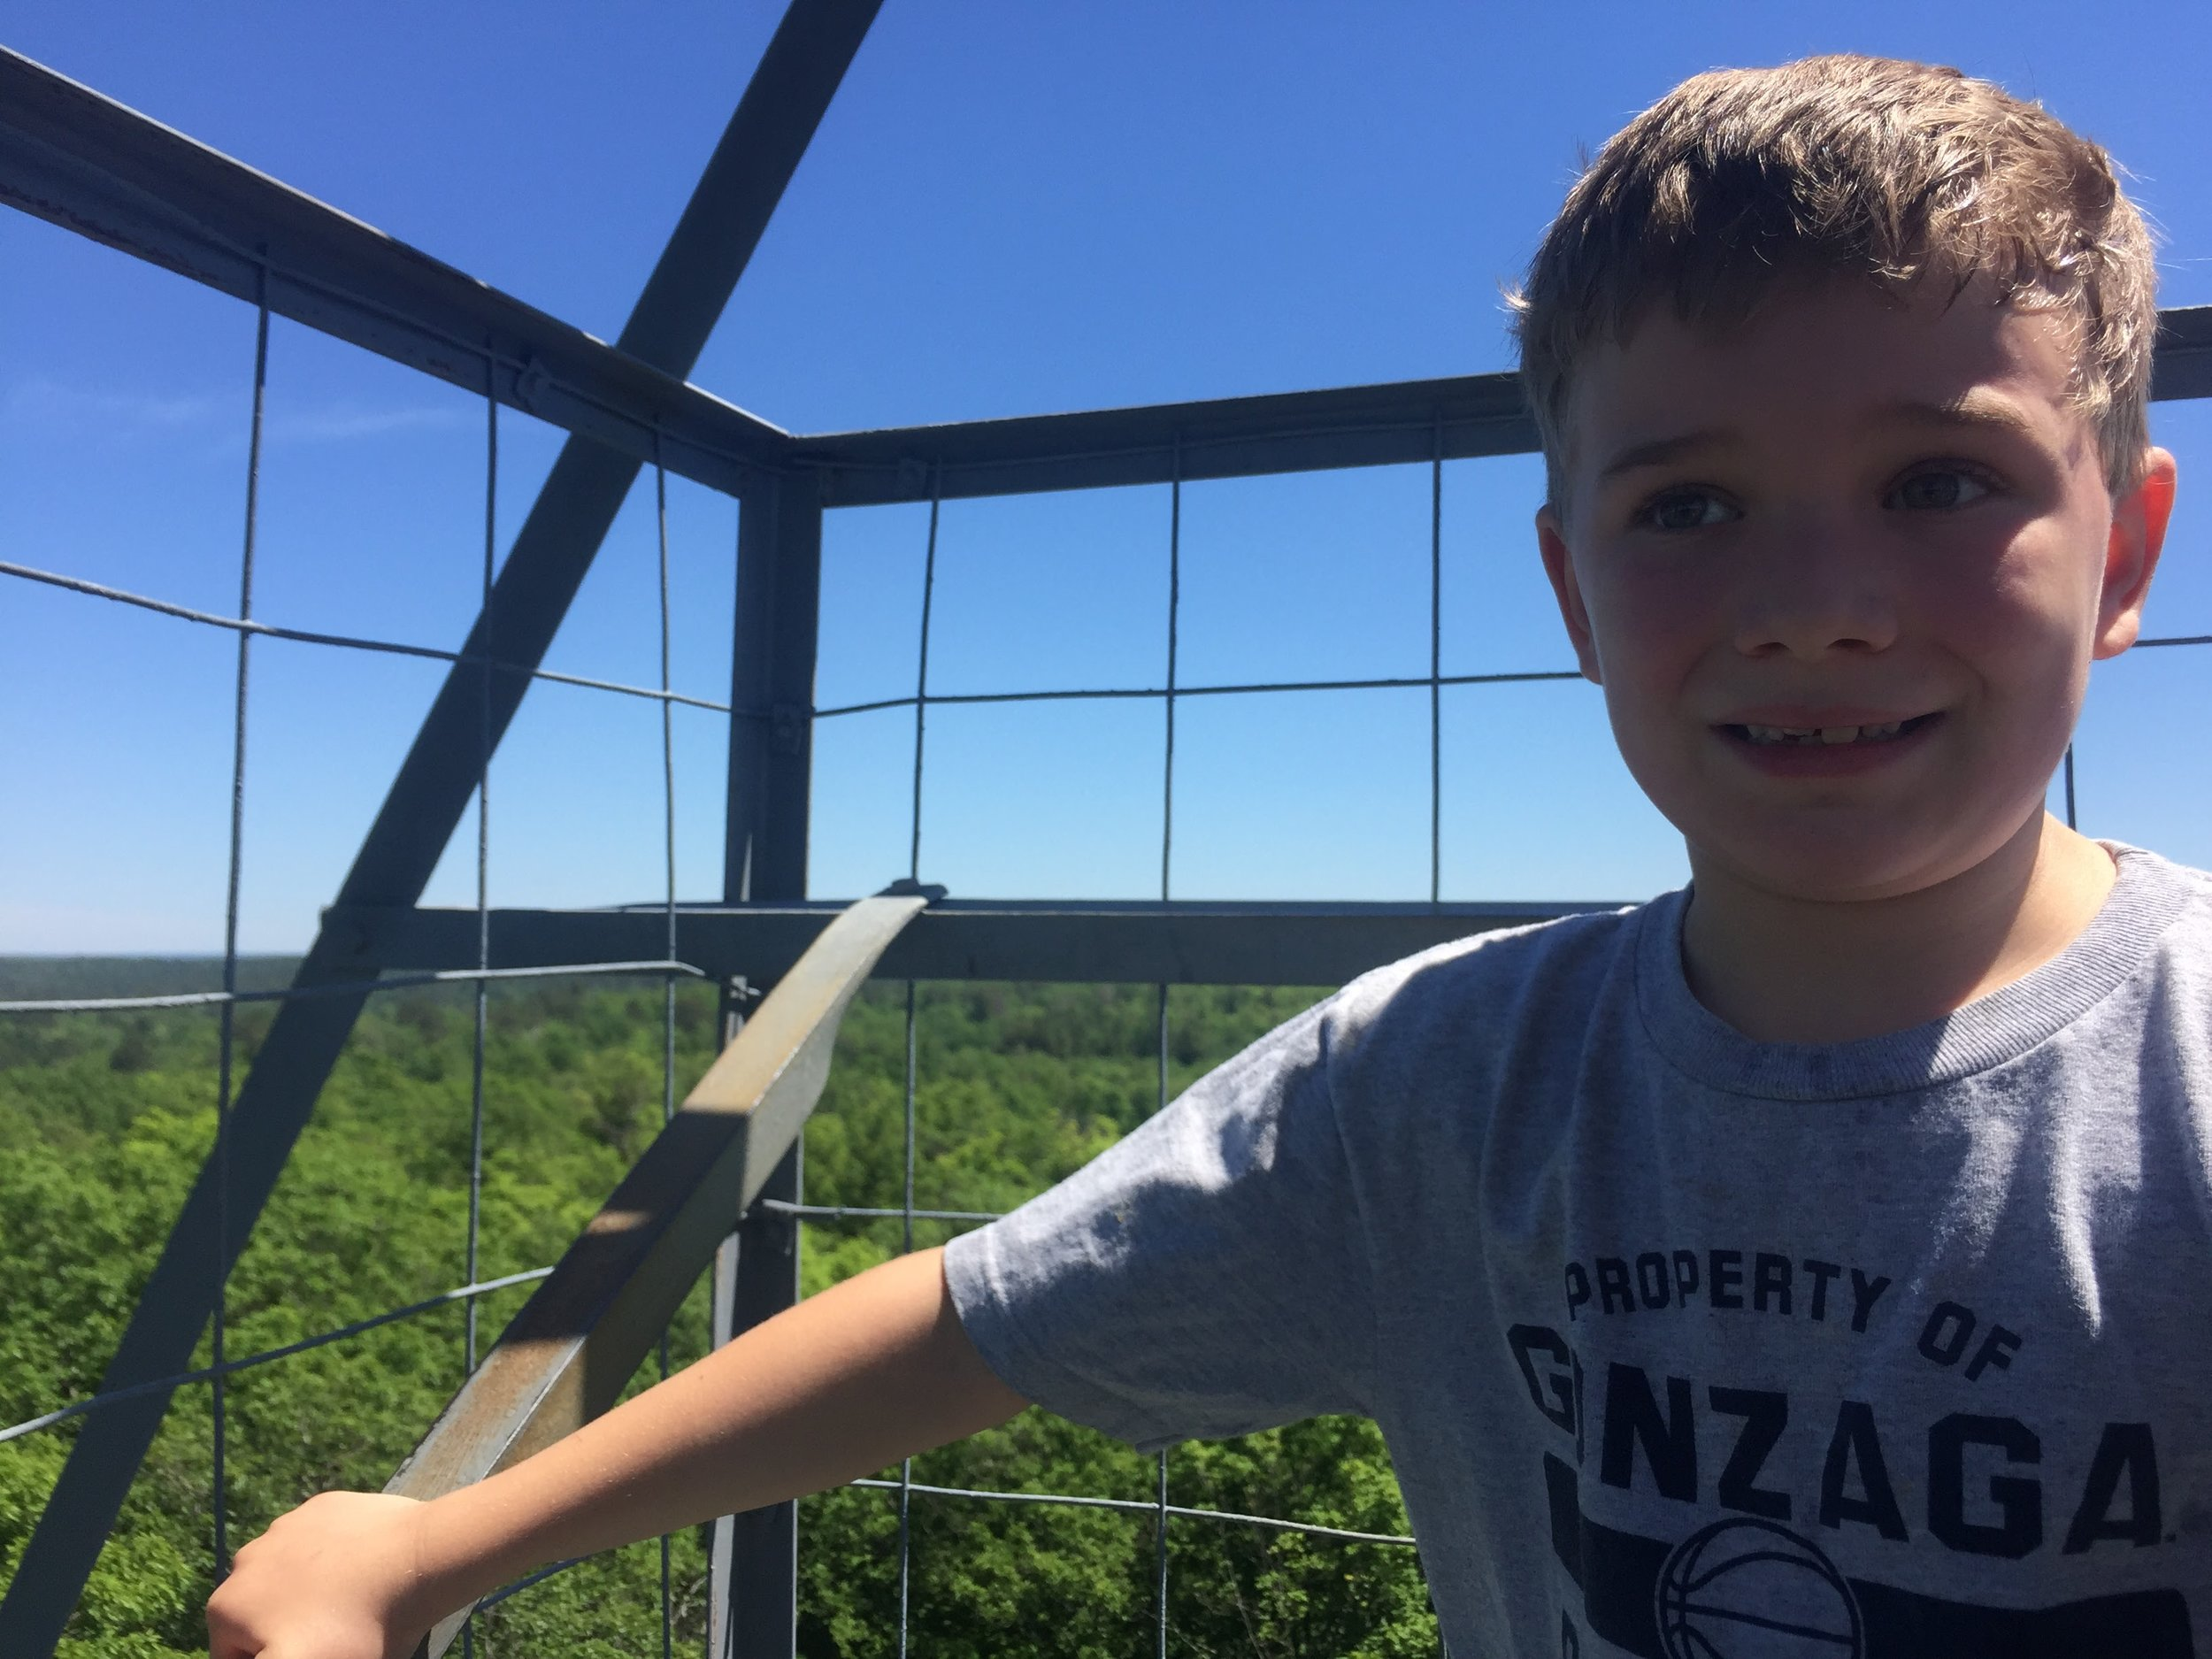 Top of the fire tower